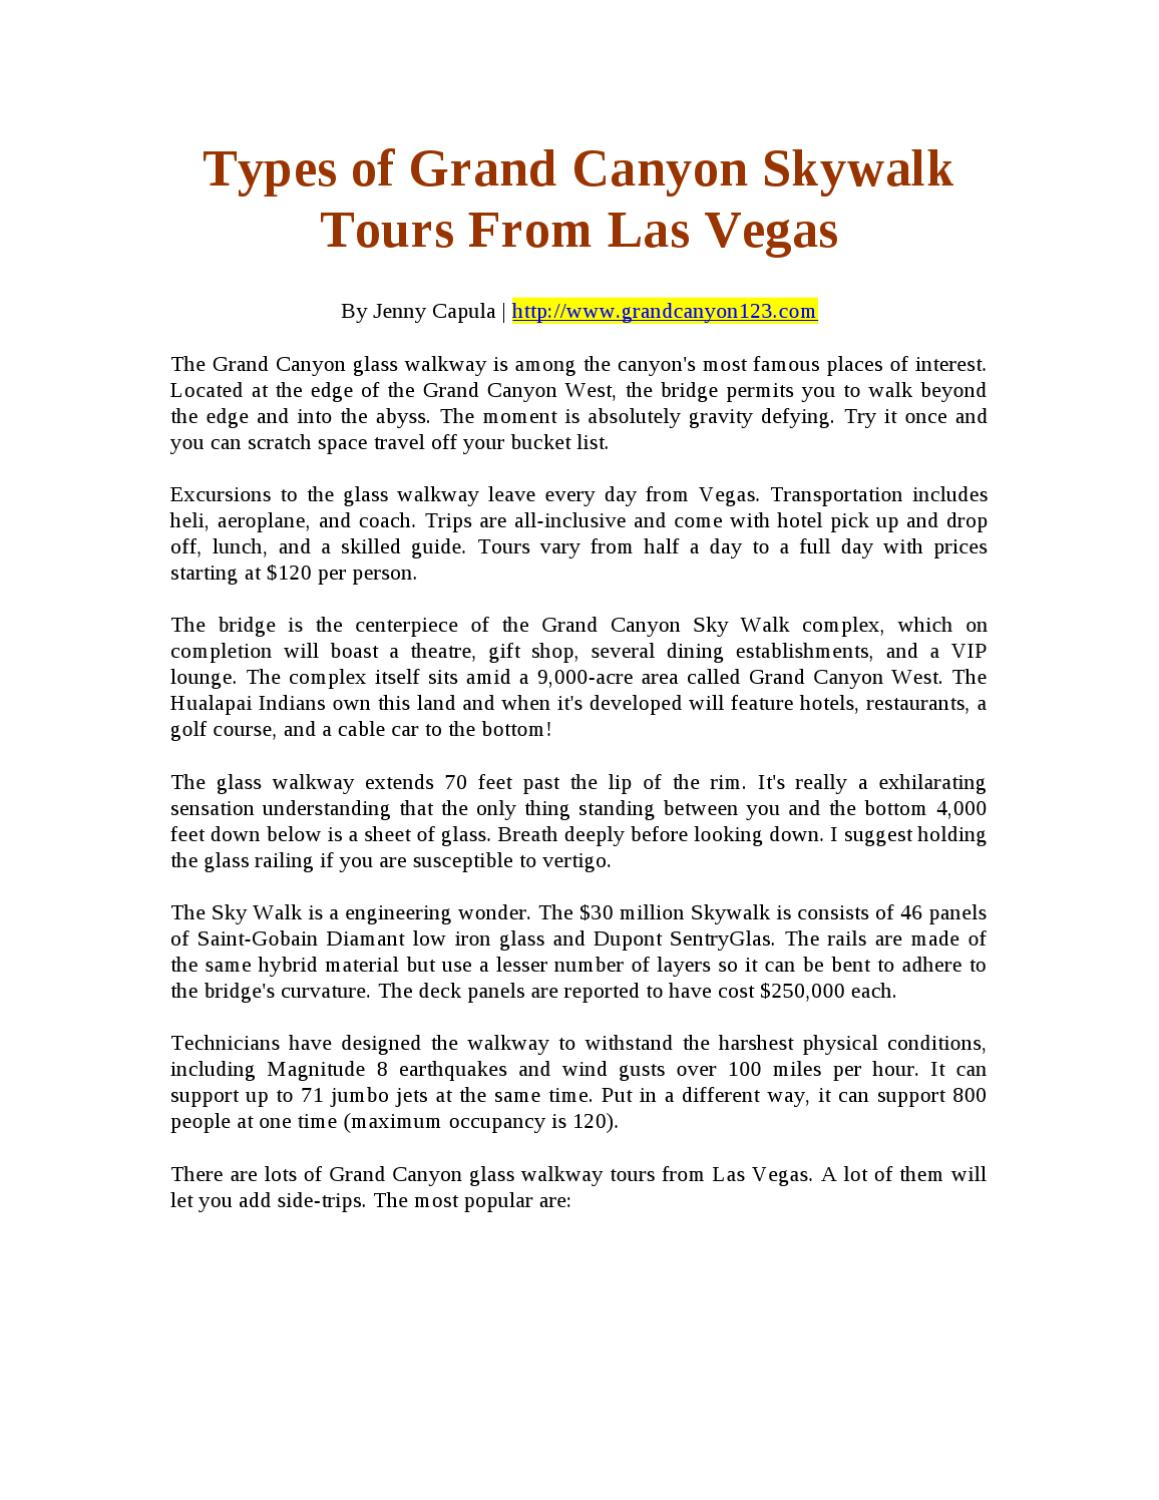 Types Of Grand Canyon Skywalk Tours From Las Vegas By Jenny